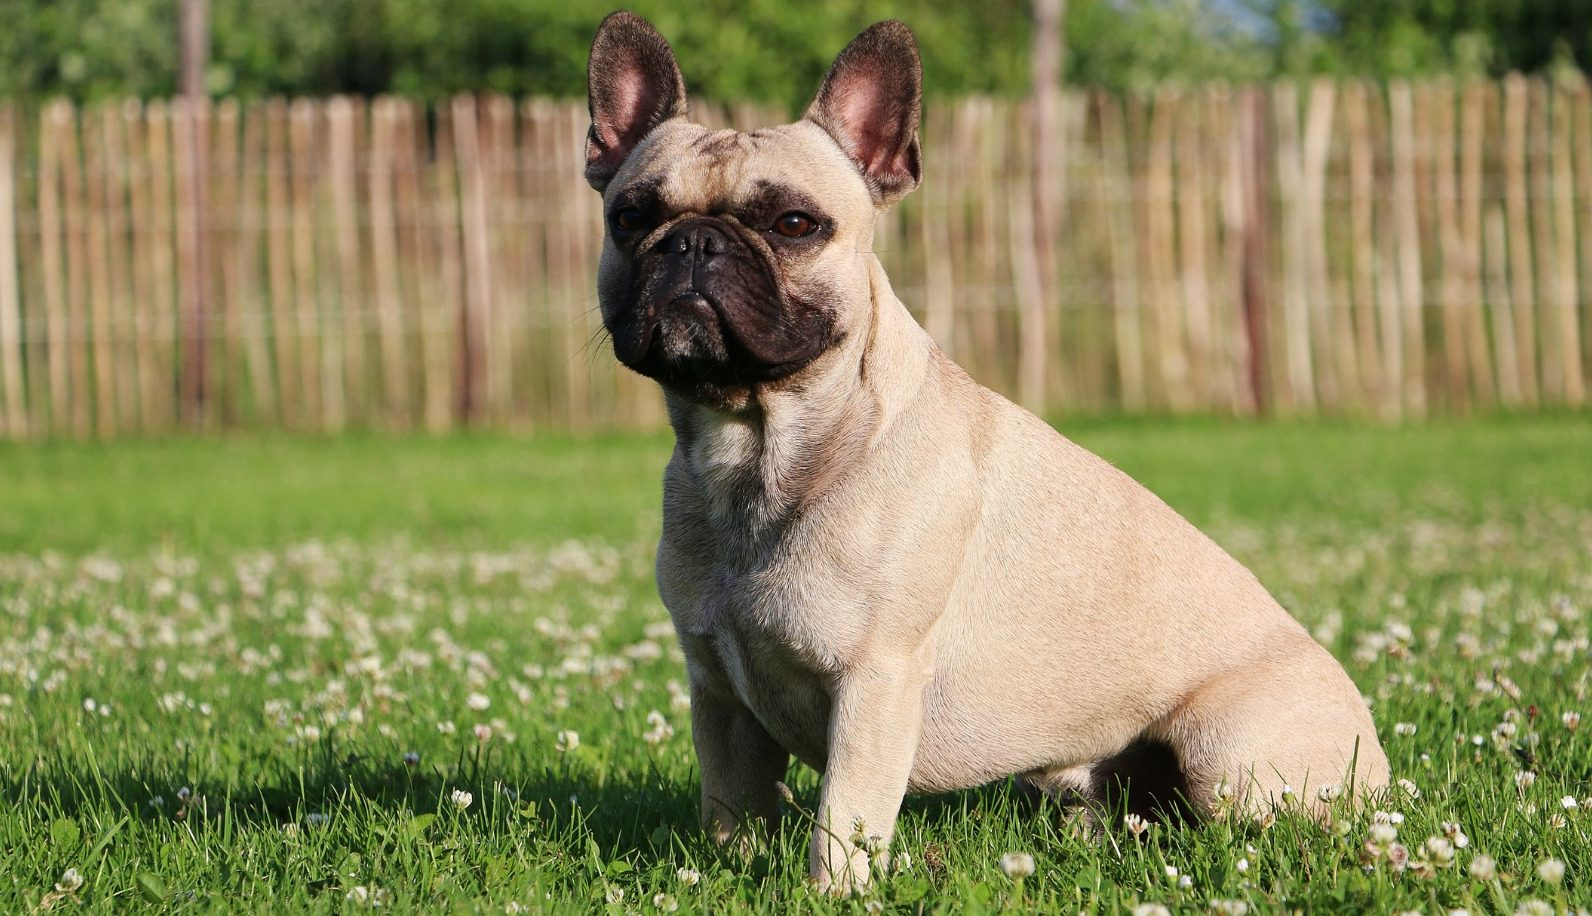 French Bulldog Puppies For Sale - Frenchie Puppies